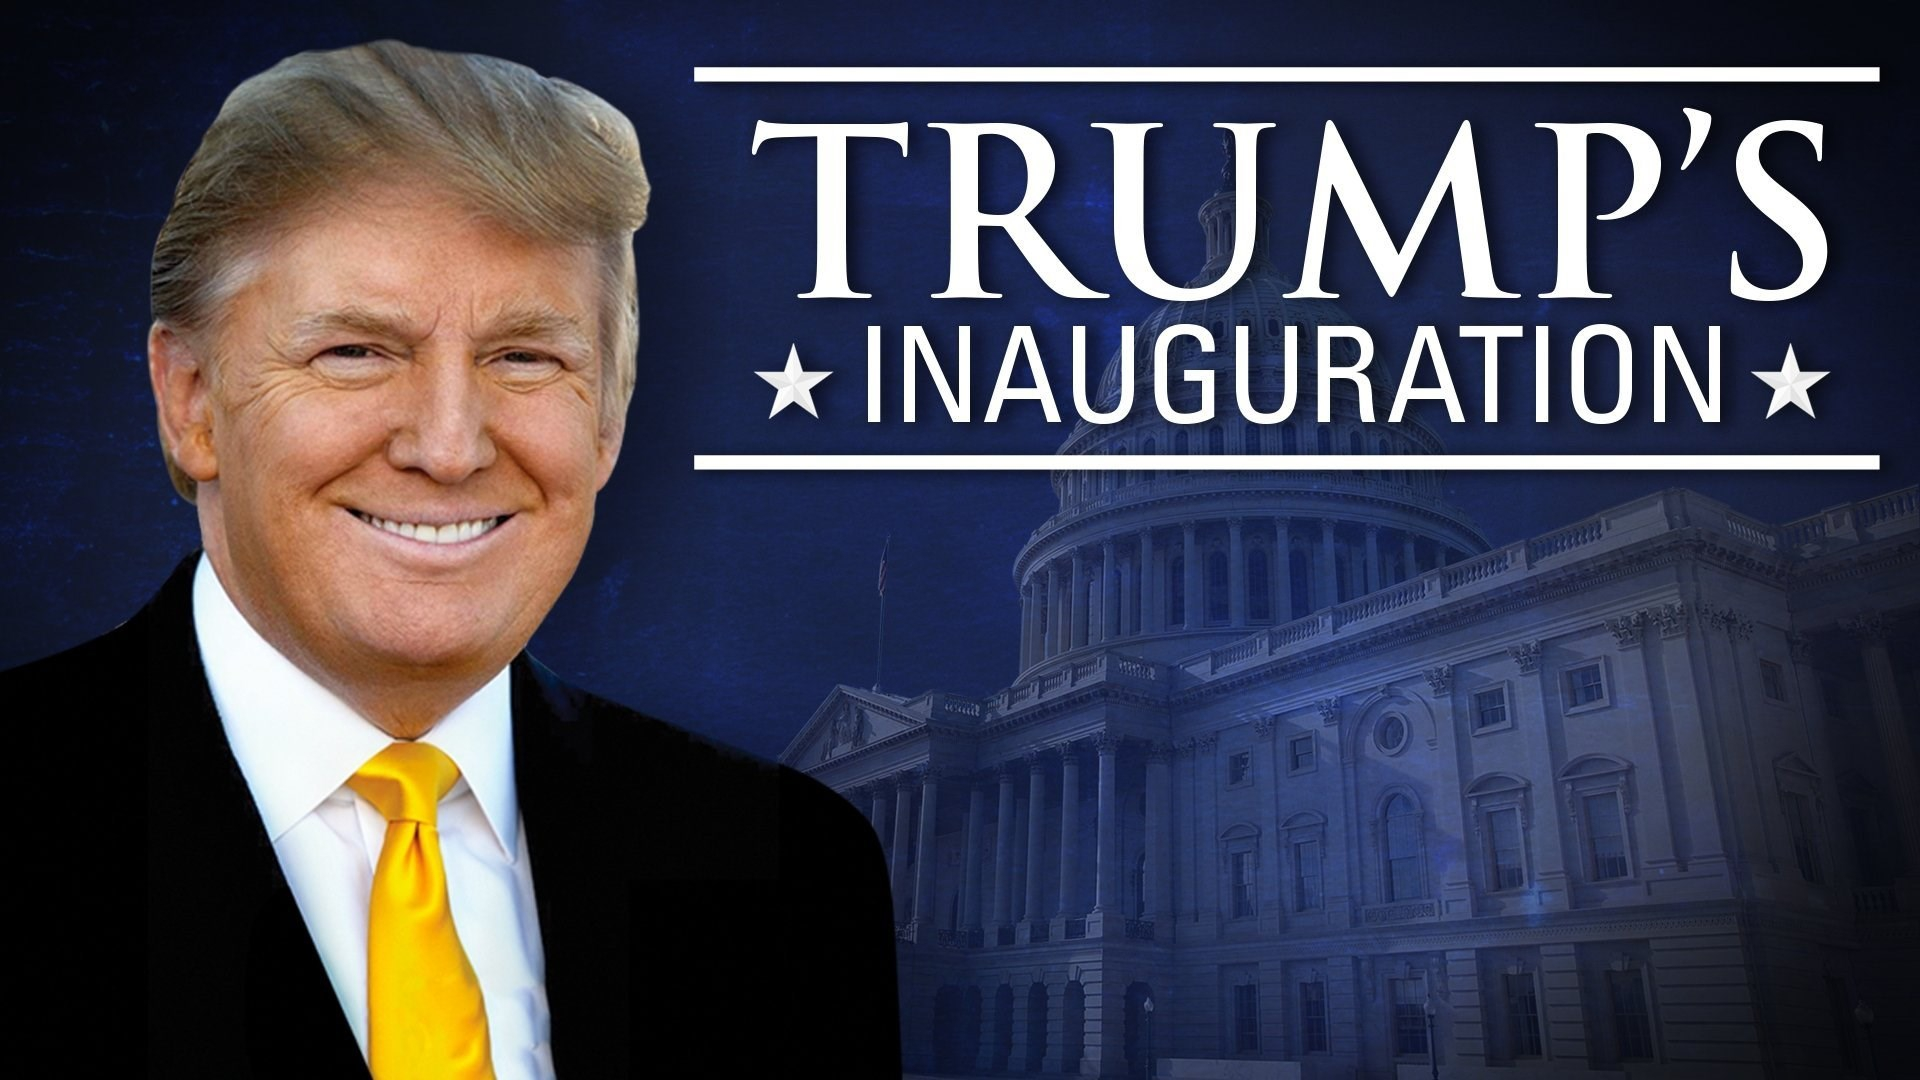 inauguration president of the united states The inauguration of the president will take place on friday, 20 january 2017 and will be the fifty-eighth presidential inauguration information on the 58th presidential inauguration is available from the joint congressional committee on inaugural ceremonies website.